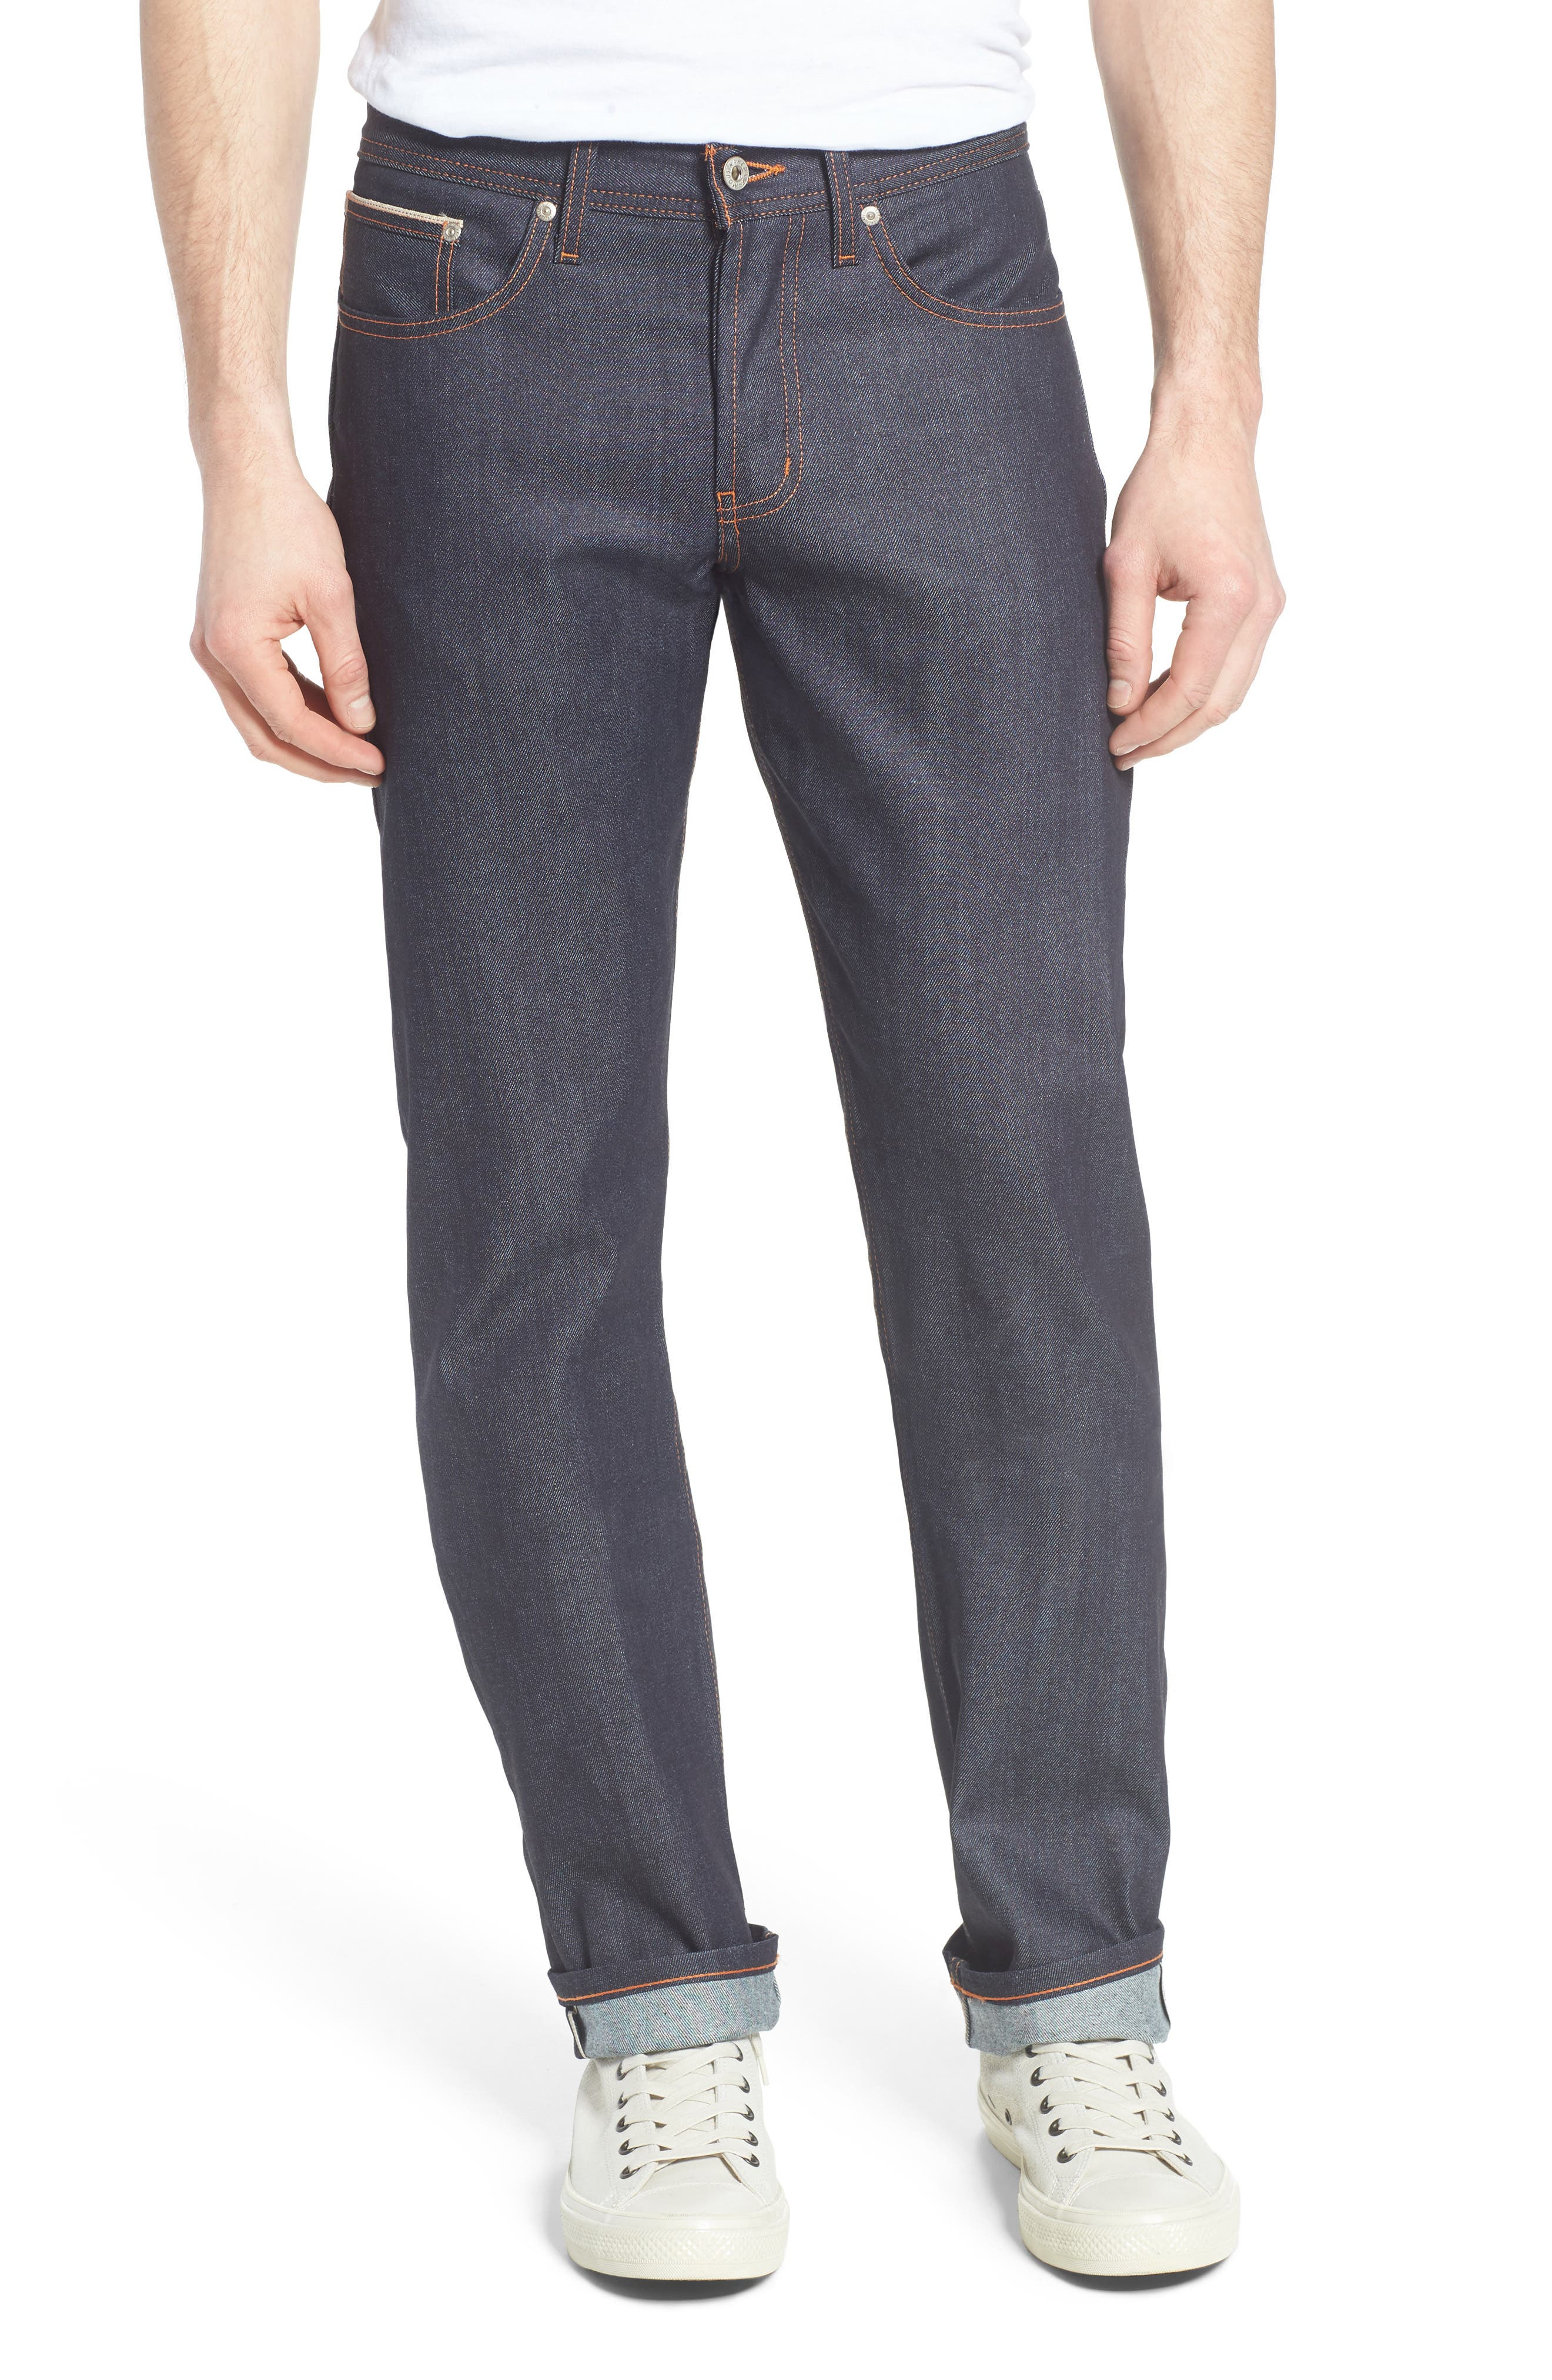 NAKED & FAMOUS DENIM, Weird Guy 11 oz. Slim Fit Stretch Selvedge Jeans, Main thumbnail 1, color, INDIGO